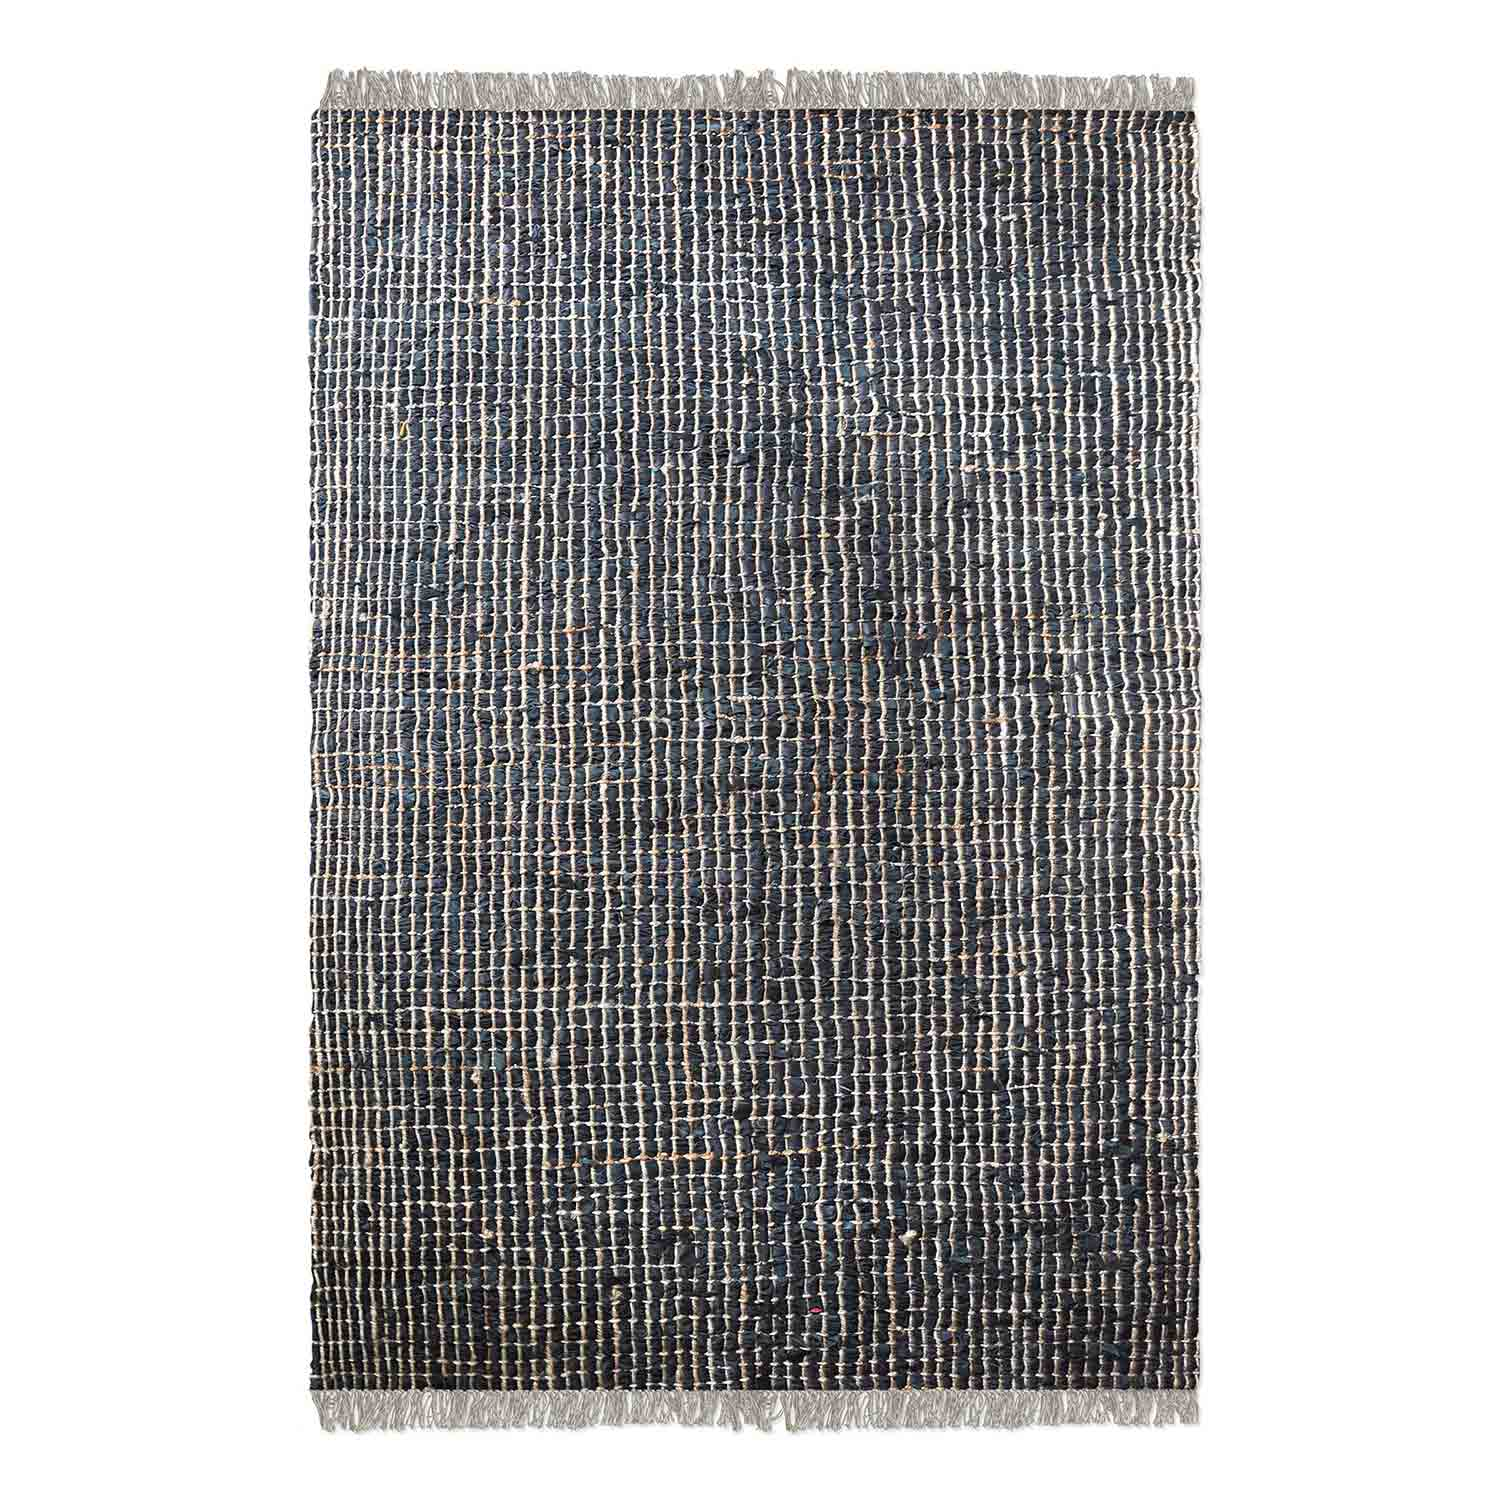 Uttermost Braymer 5 x 8 Rug - Charcoal